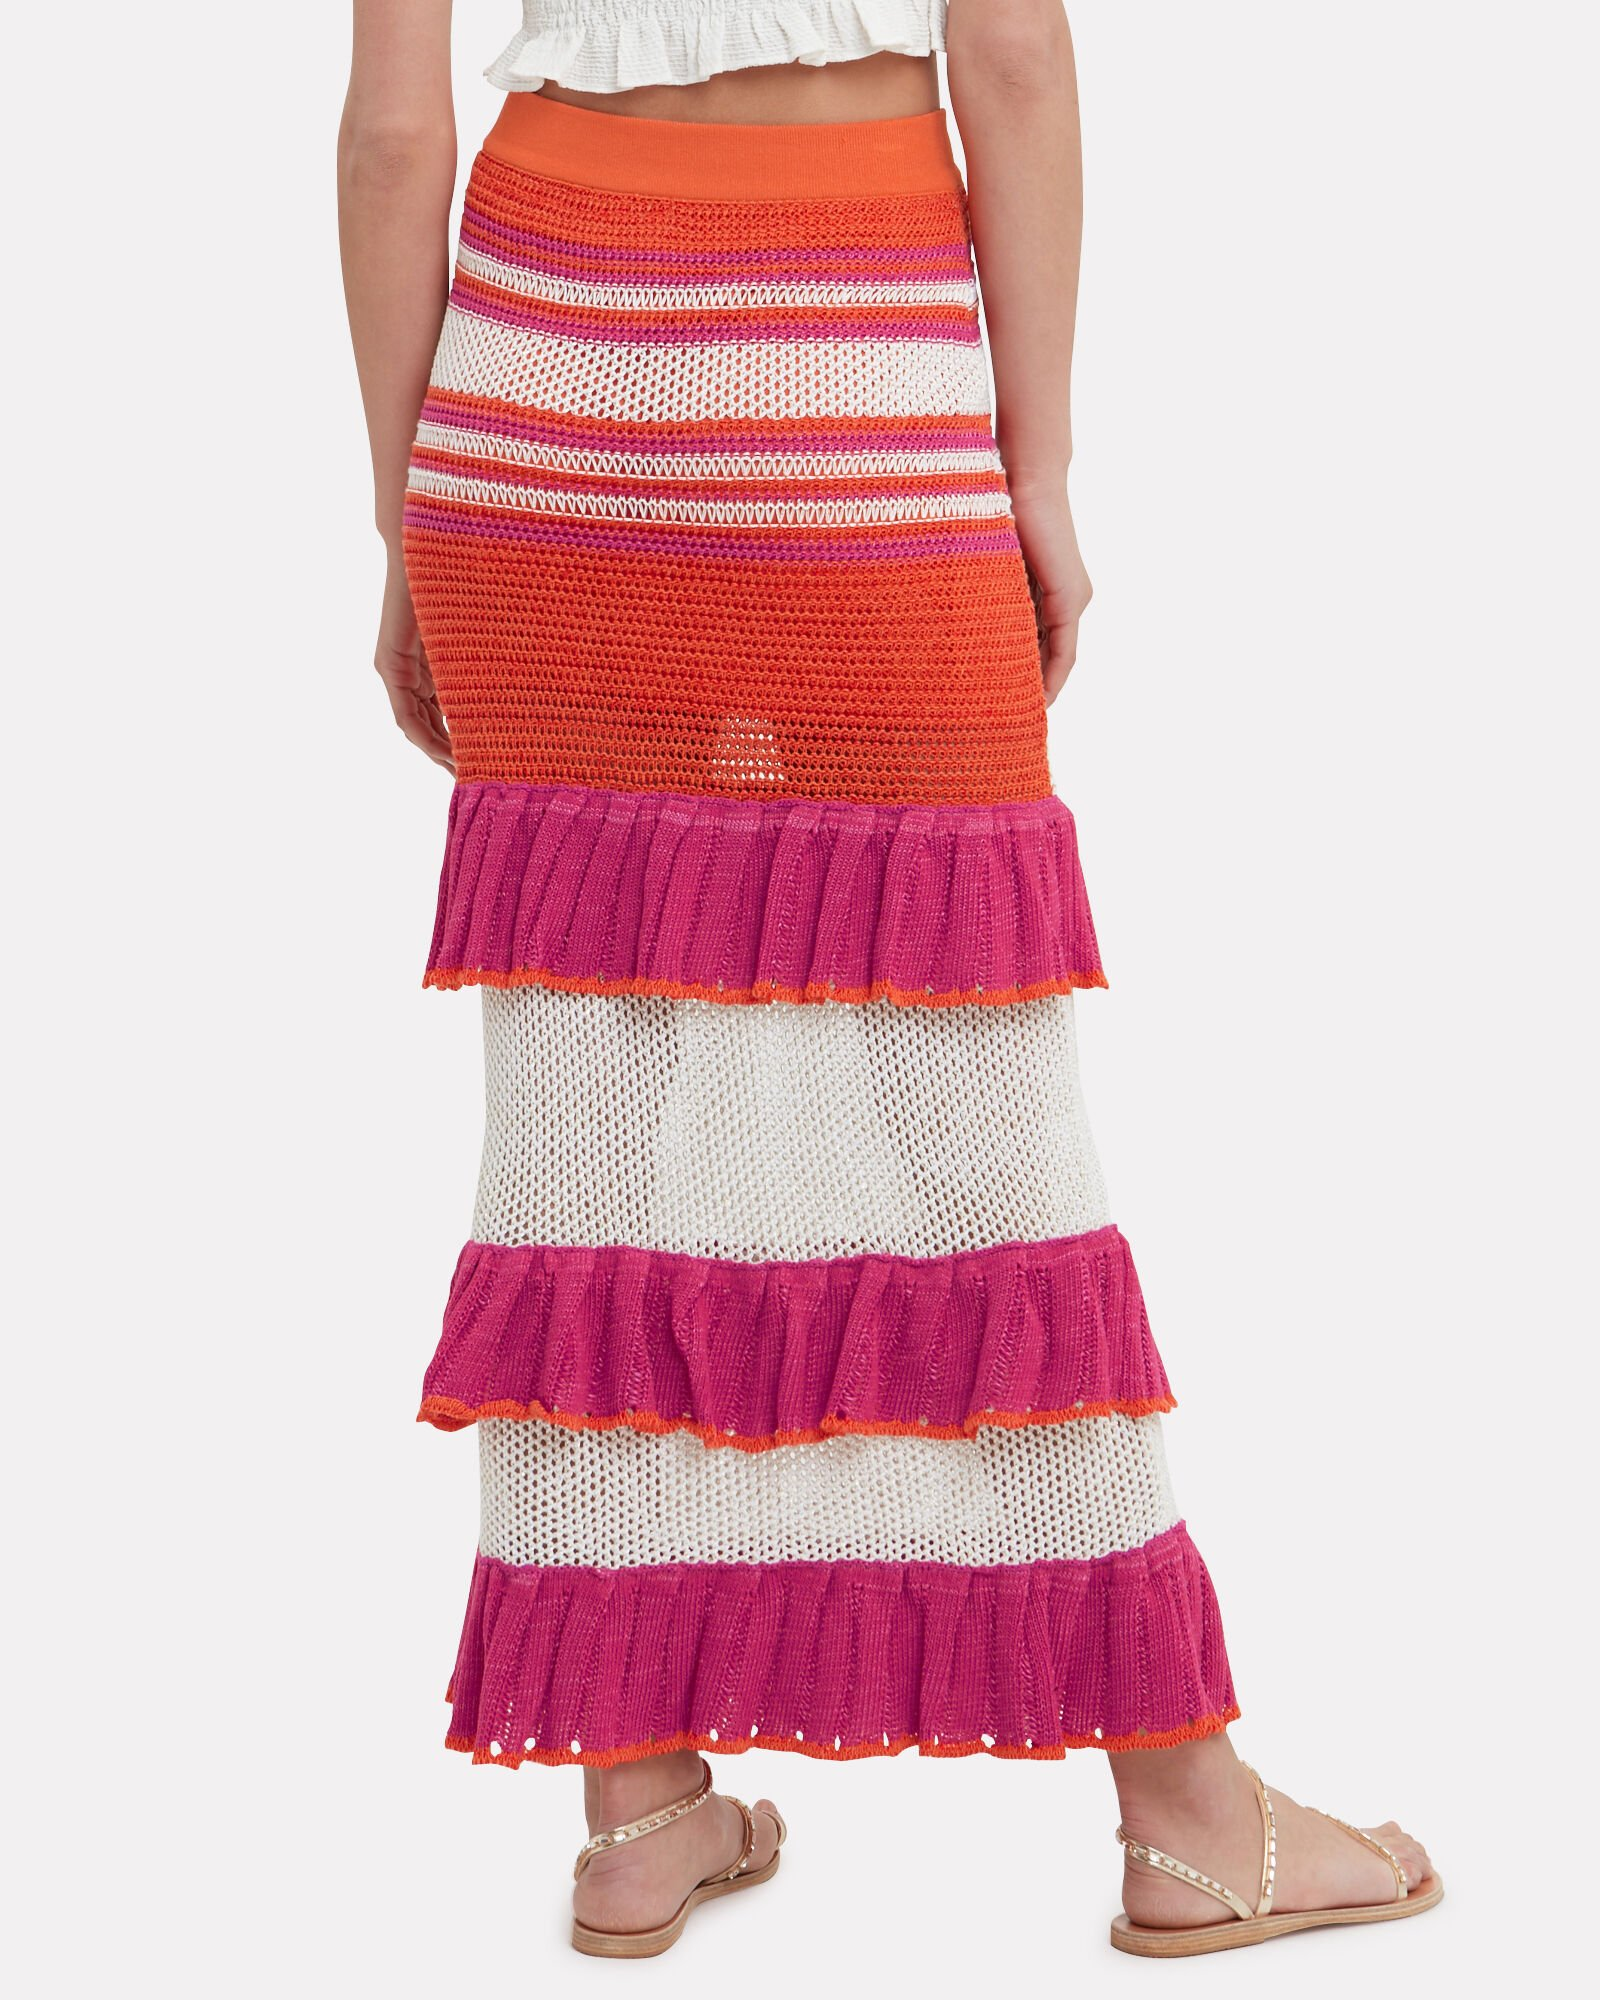 Carmen Ruffle Midi Skirt, ORANGE/PINK/WHITE, hi-res